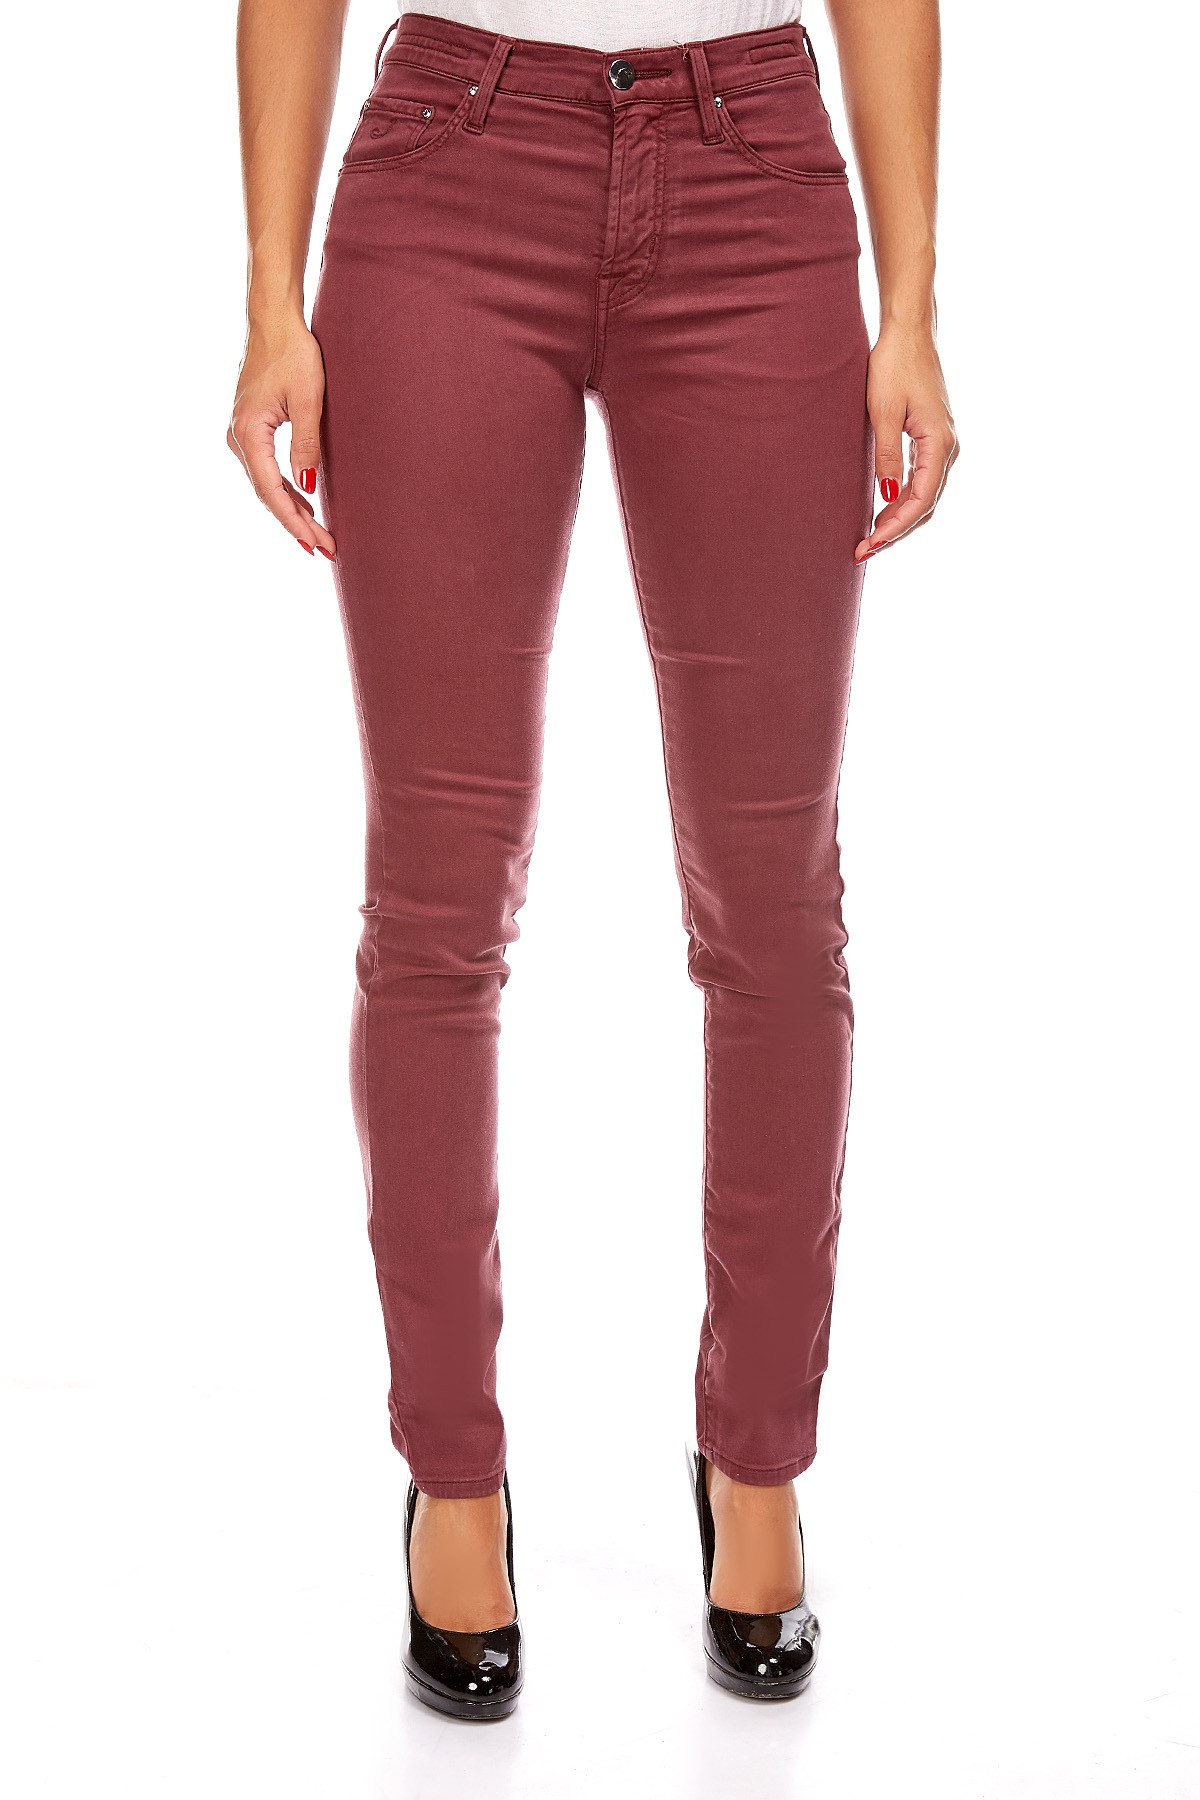 00 Bordeaux Kimberly € Slim 174 00227 Cohen Femme Jacob S660 Jeans Nvmnw80